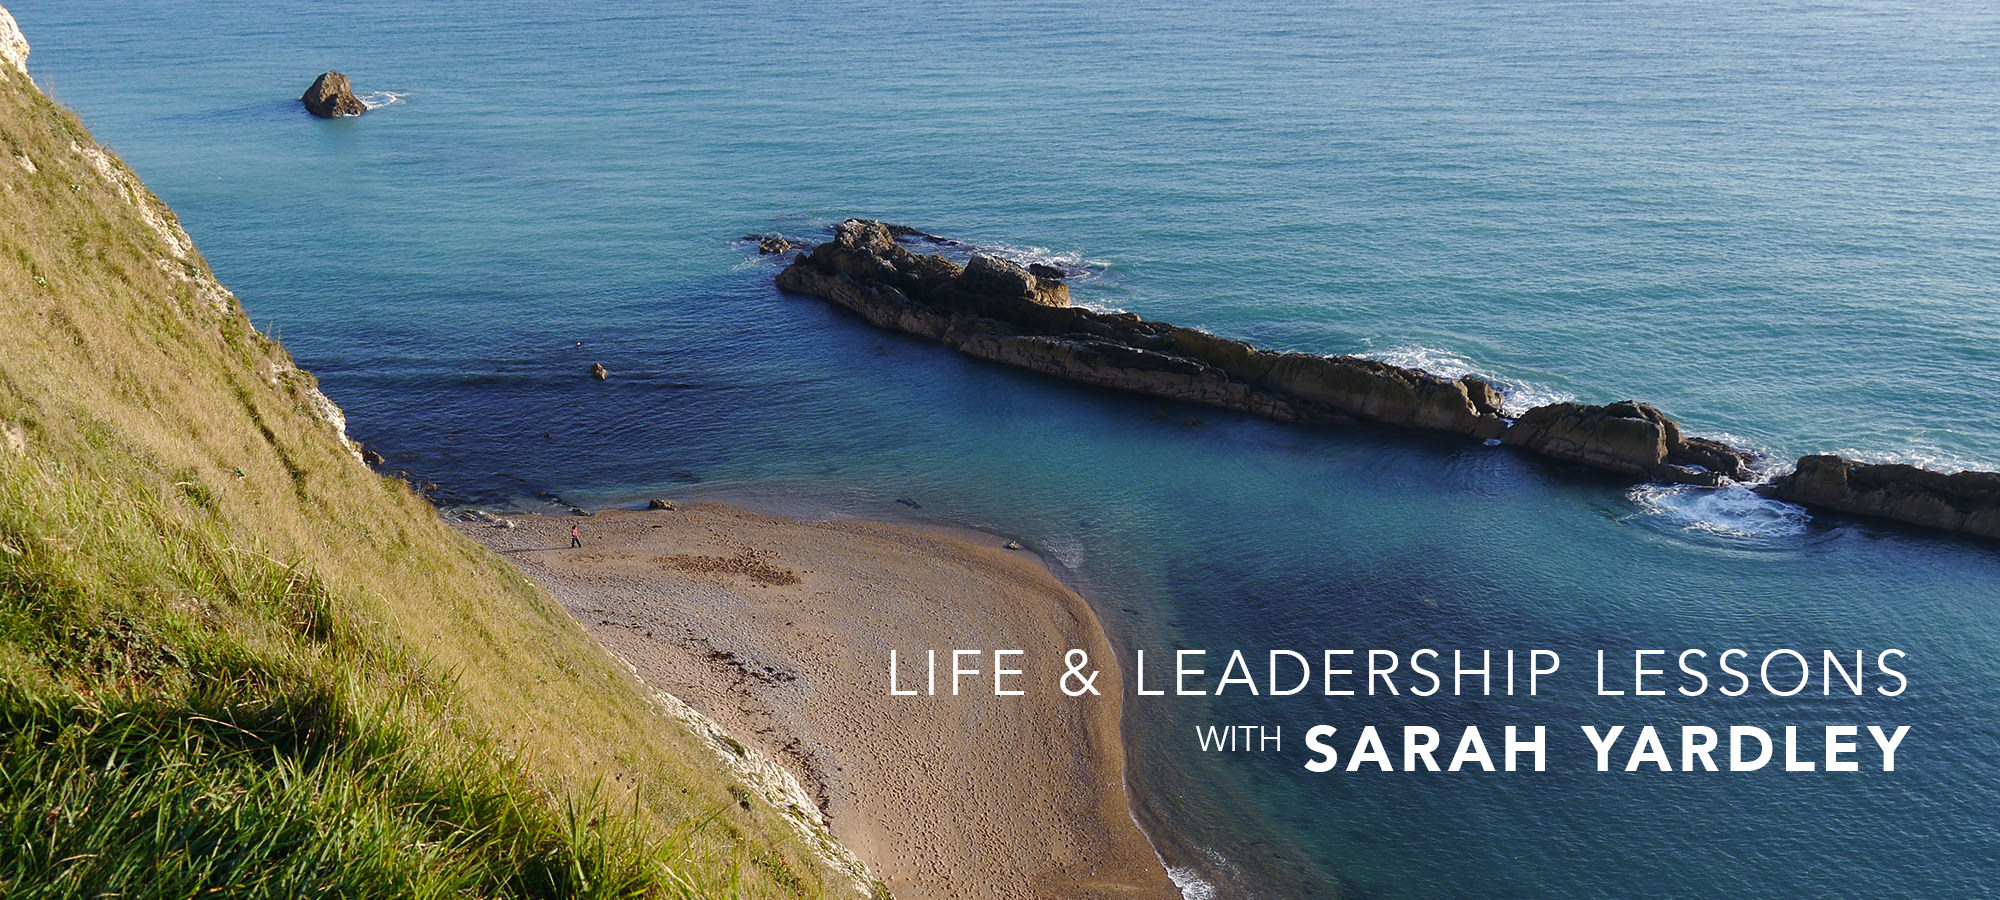 Life & Leadership Lessons with Sarah Yardley